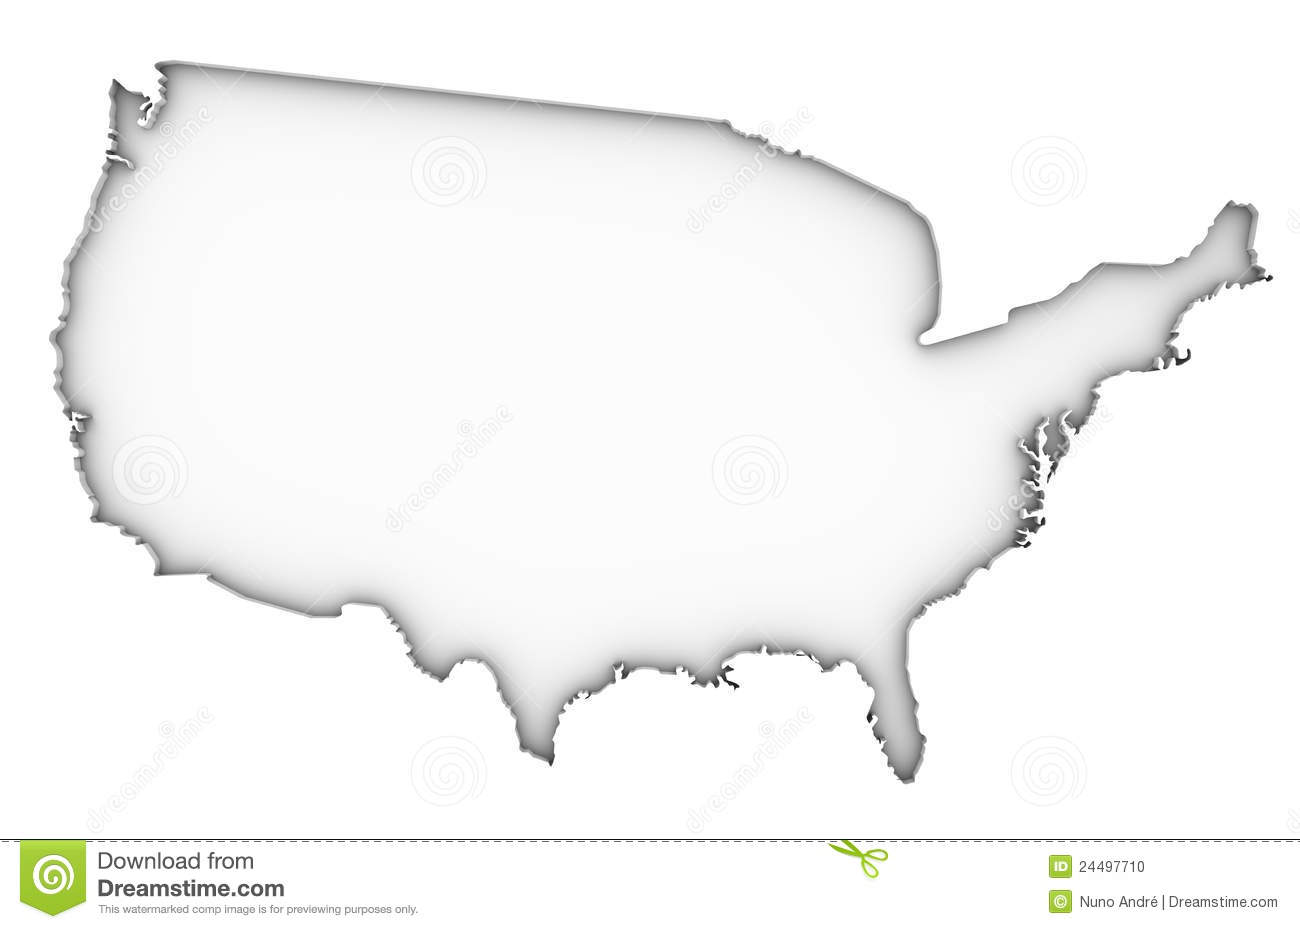 united states and dreams 5 days ago  i am american from united states n nicole posted on 05 sep 2018 at 2:33 pm  bst also there is list to do for this dream means make my.